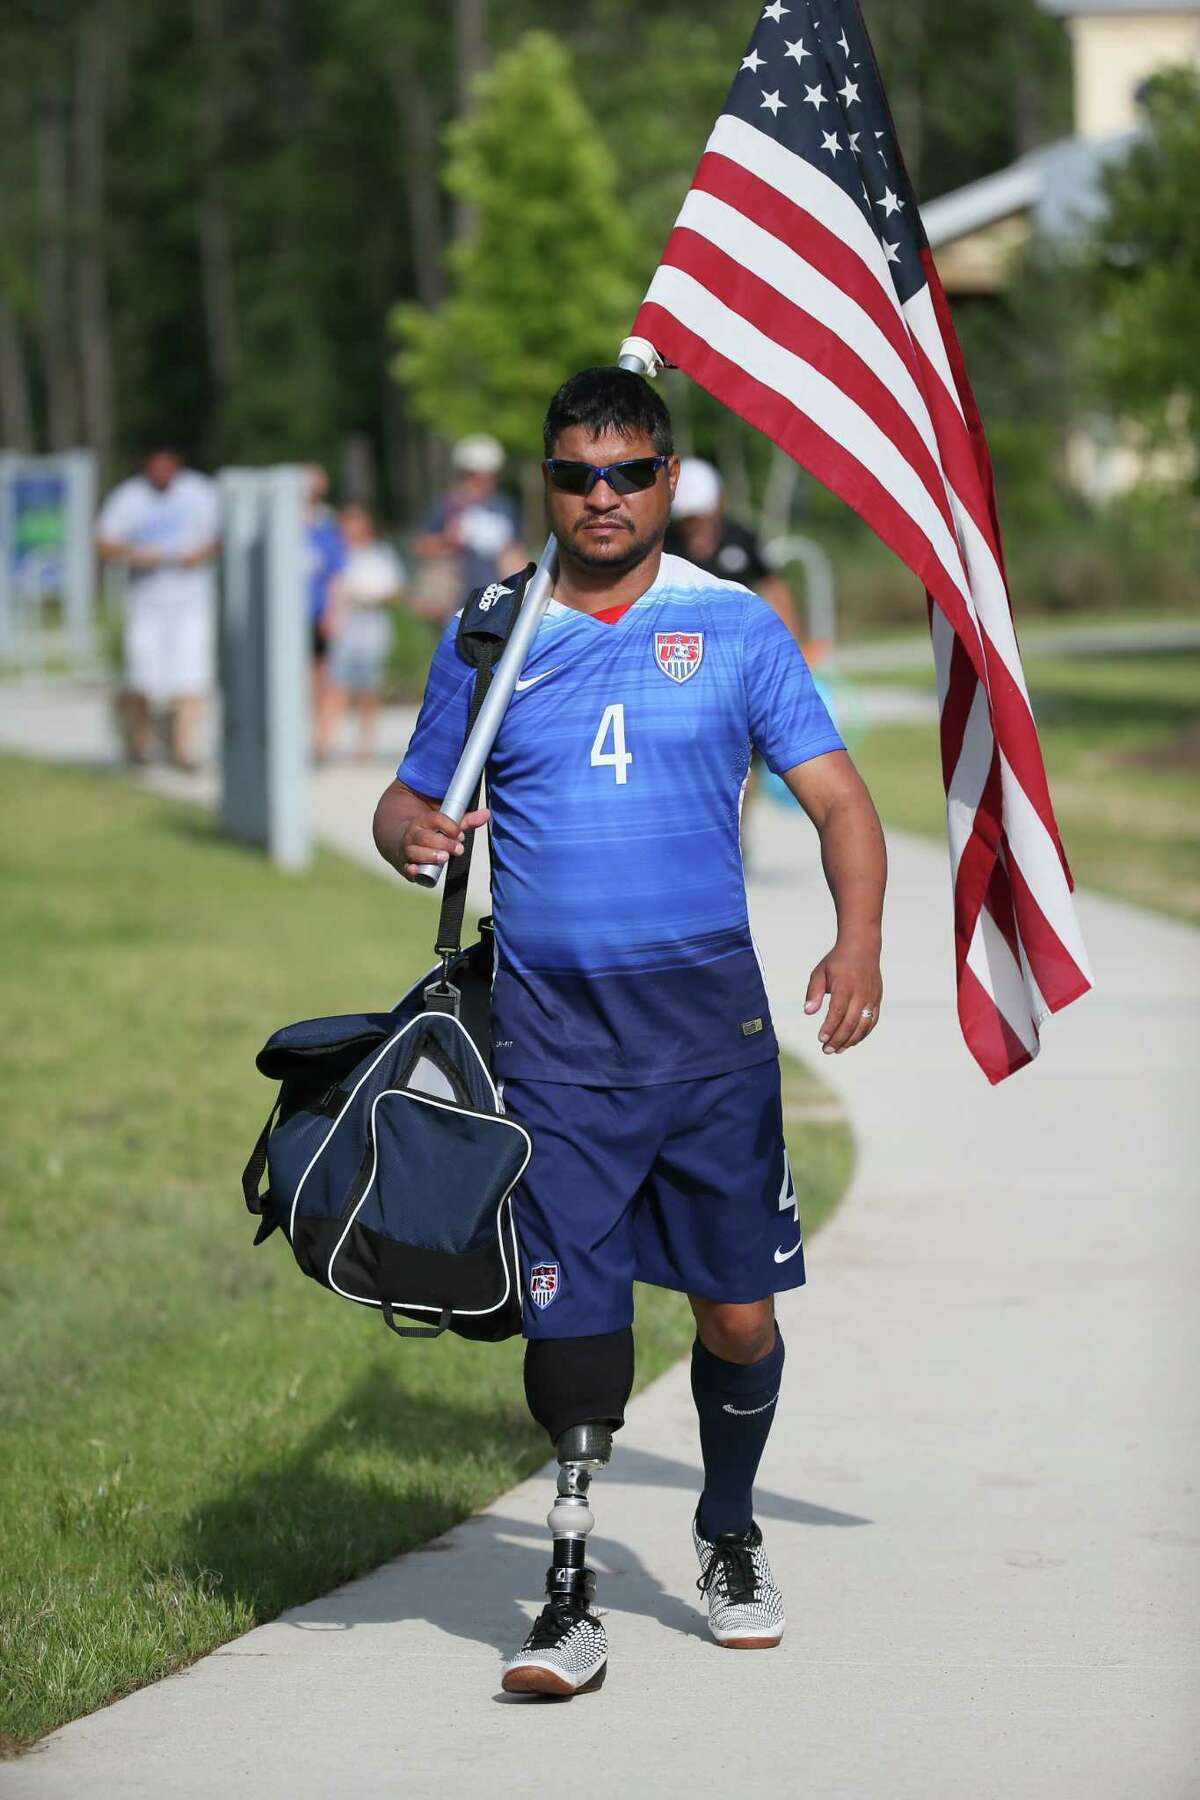 June 2, 2018: Team USA player Robert Ferguson is a US military veteran who lost his leg in a service-related injury. His team will play in the Amputee Soccer Lone Star Invitational match against the England Amputee Soccer Team at Gosling Sports Fields in The Woodlands, Texas. (Leslie Plaza Johnson/Freelance)